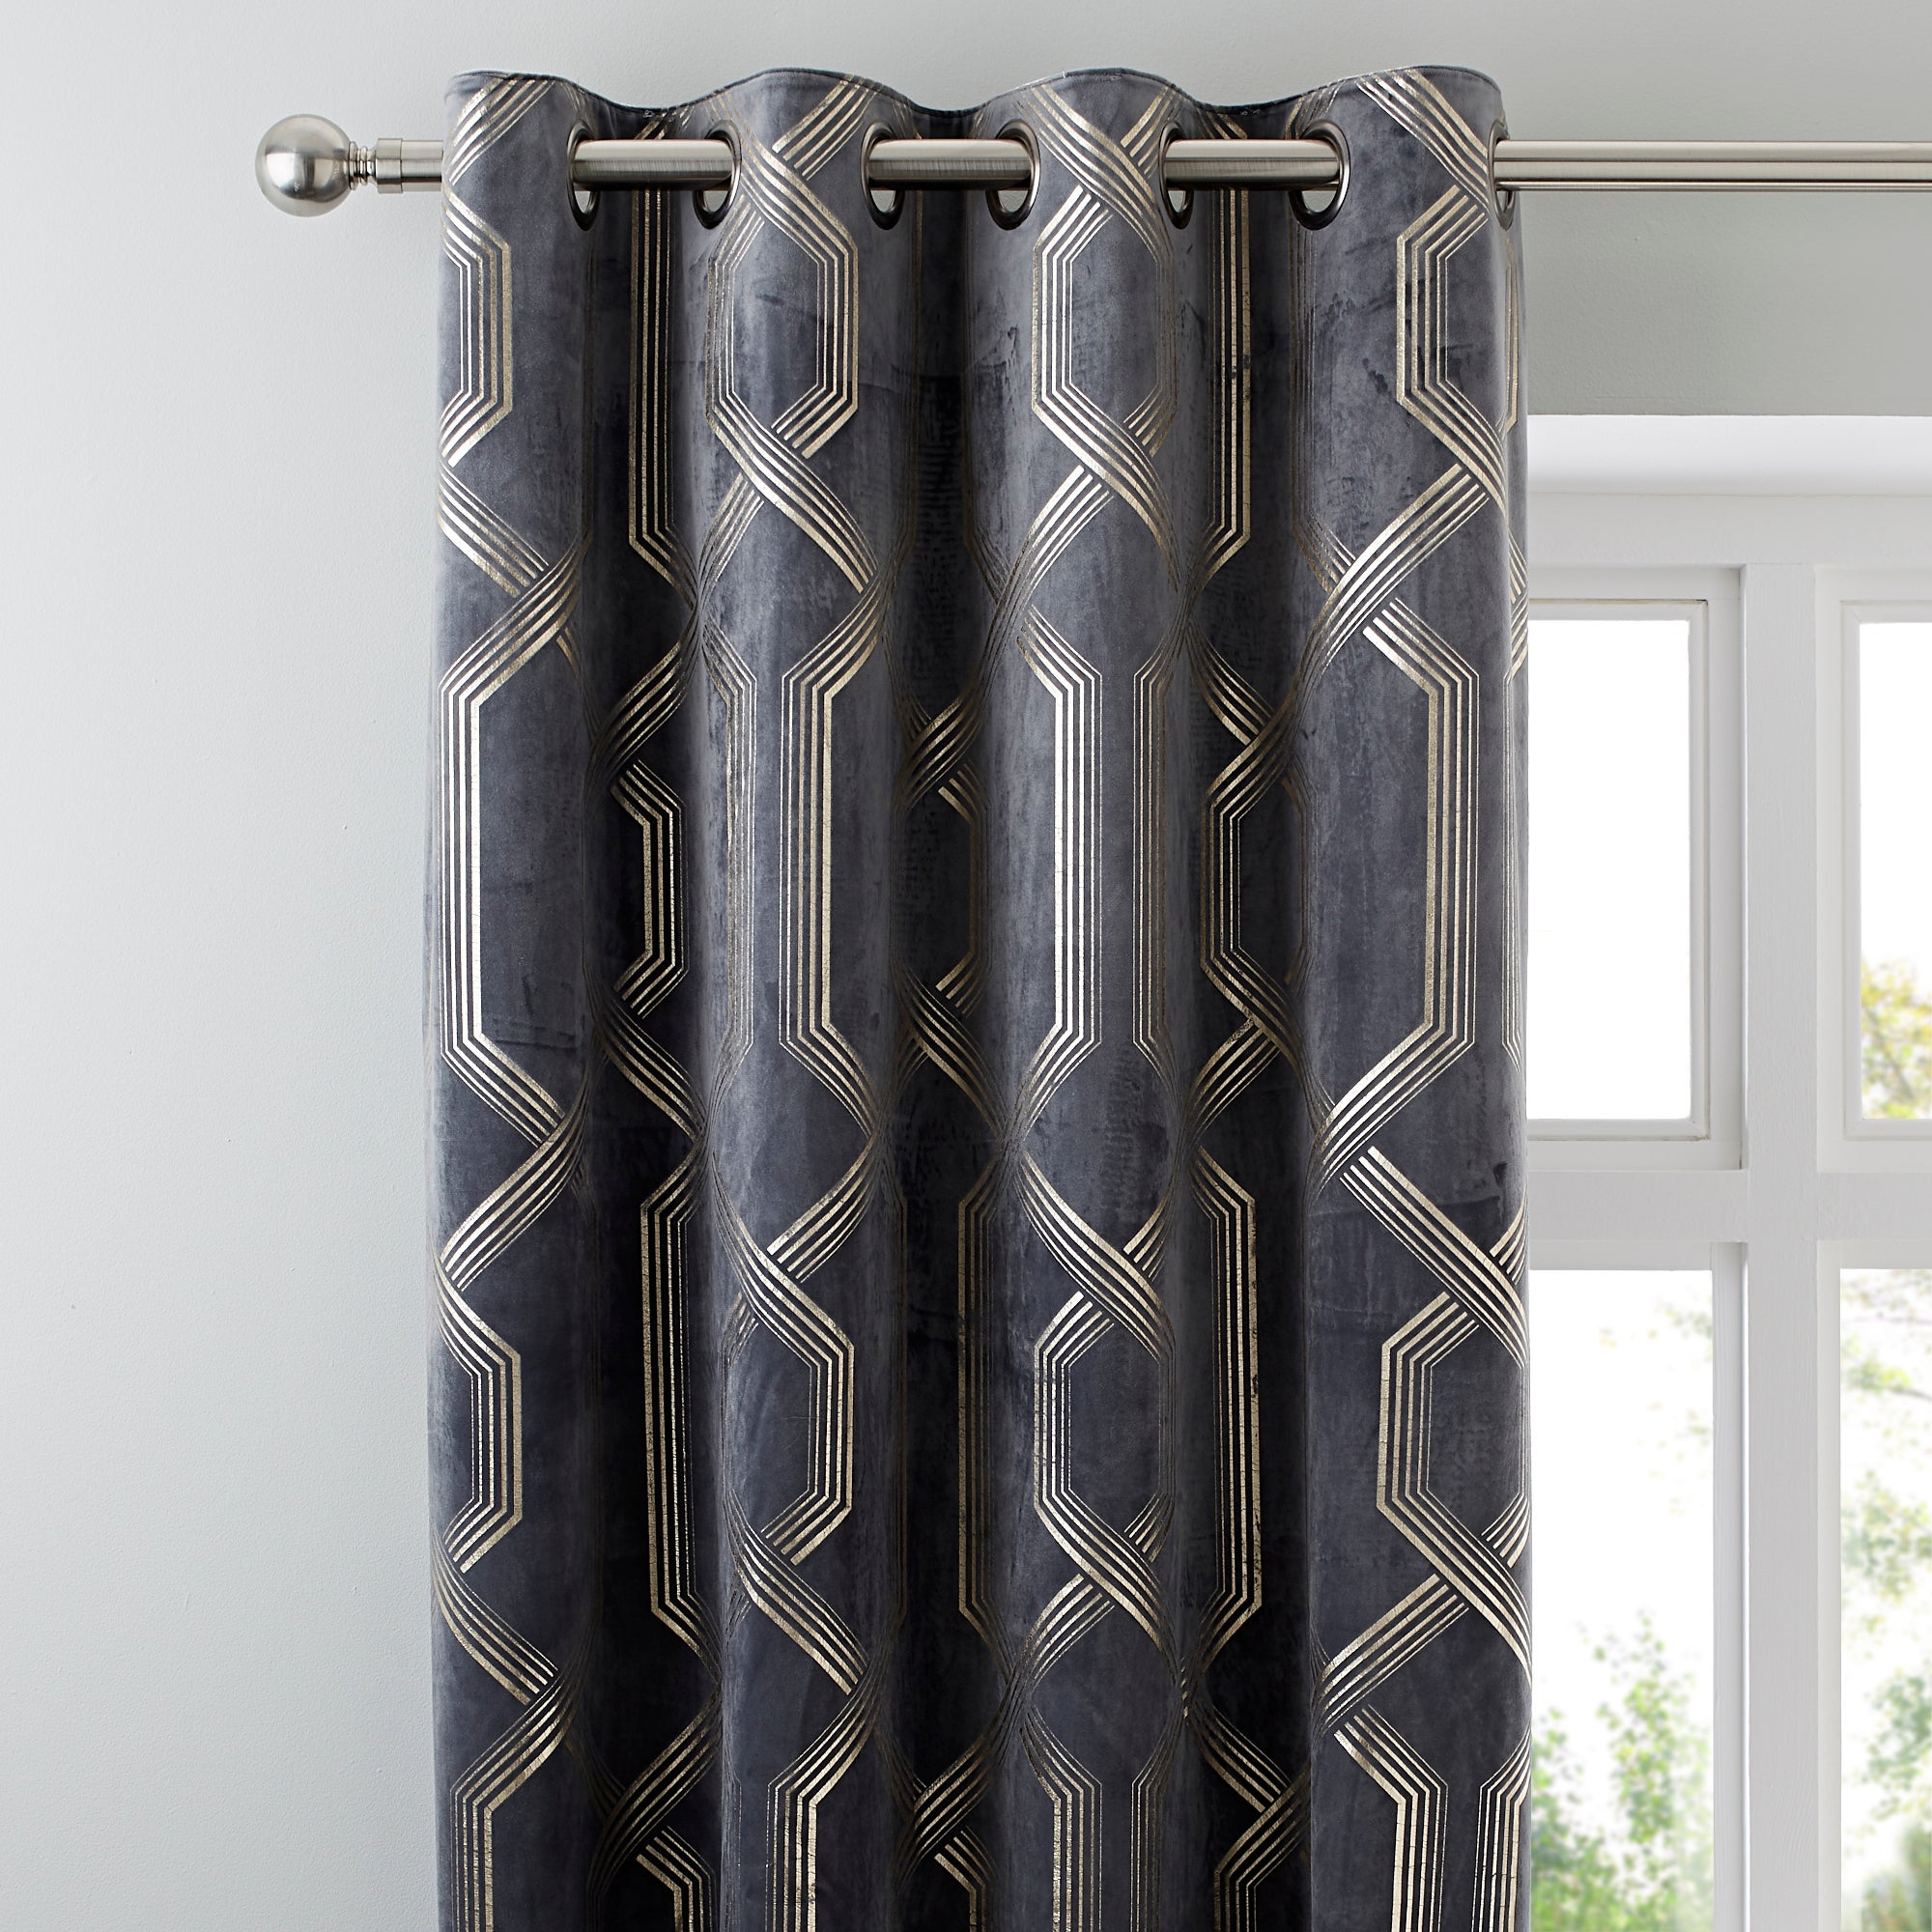 Image of 5A Fifth Avenue Bergen Charcoal Eyelet Curtains Charcoal Grey